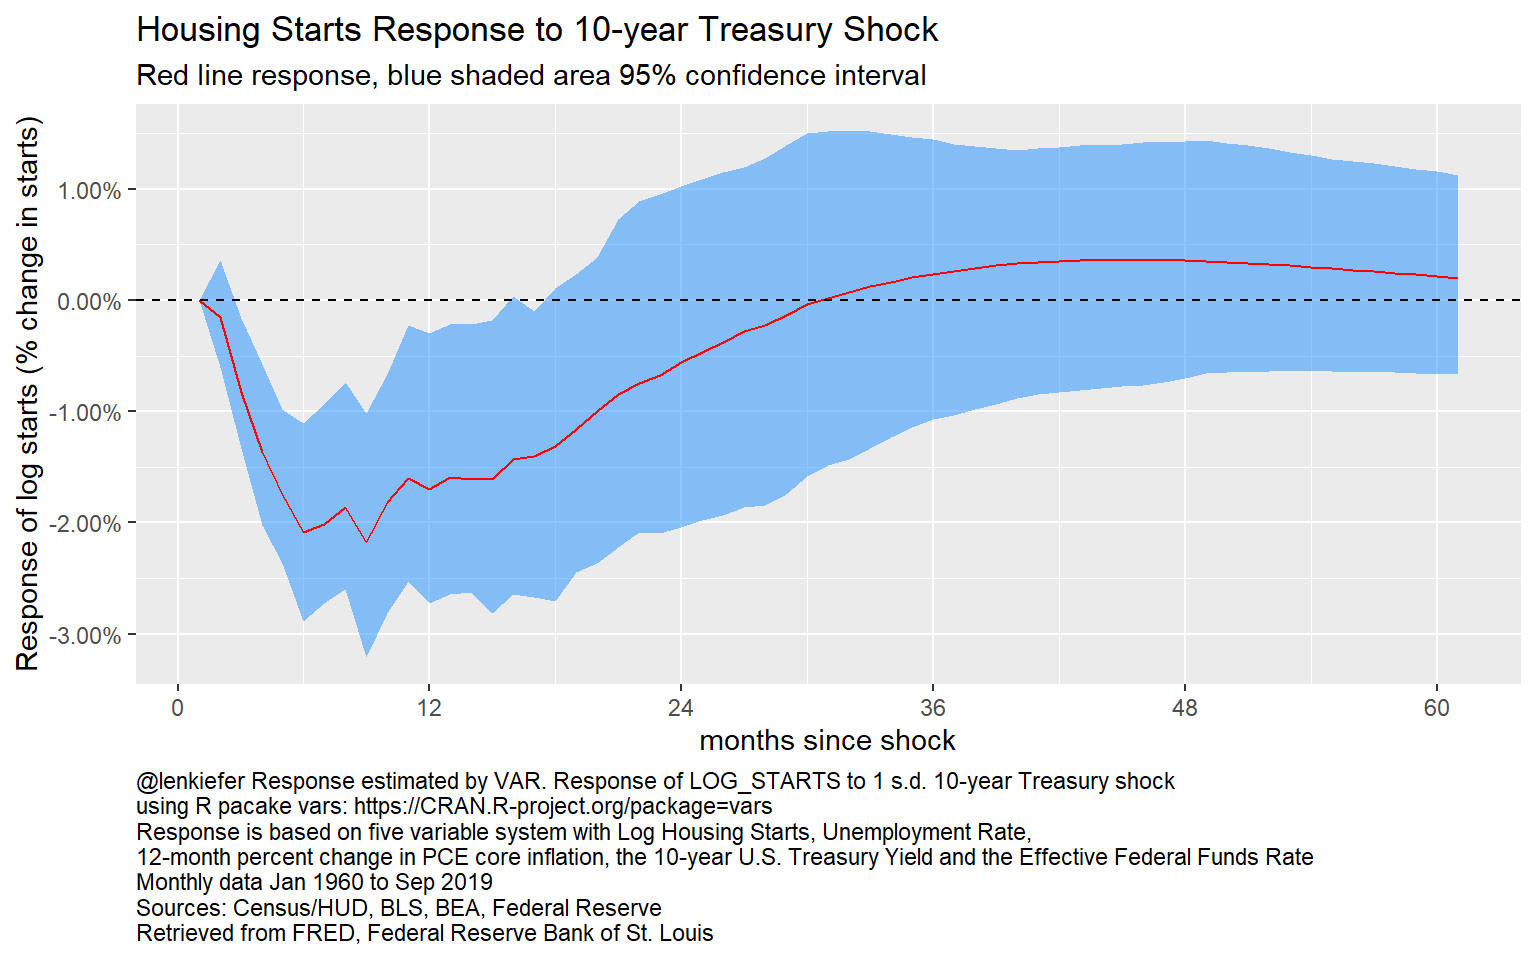 Impulse Response of Log Starts to a 10-year Treasury shock